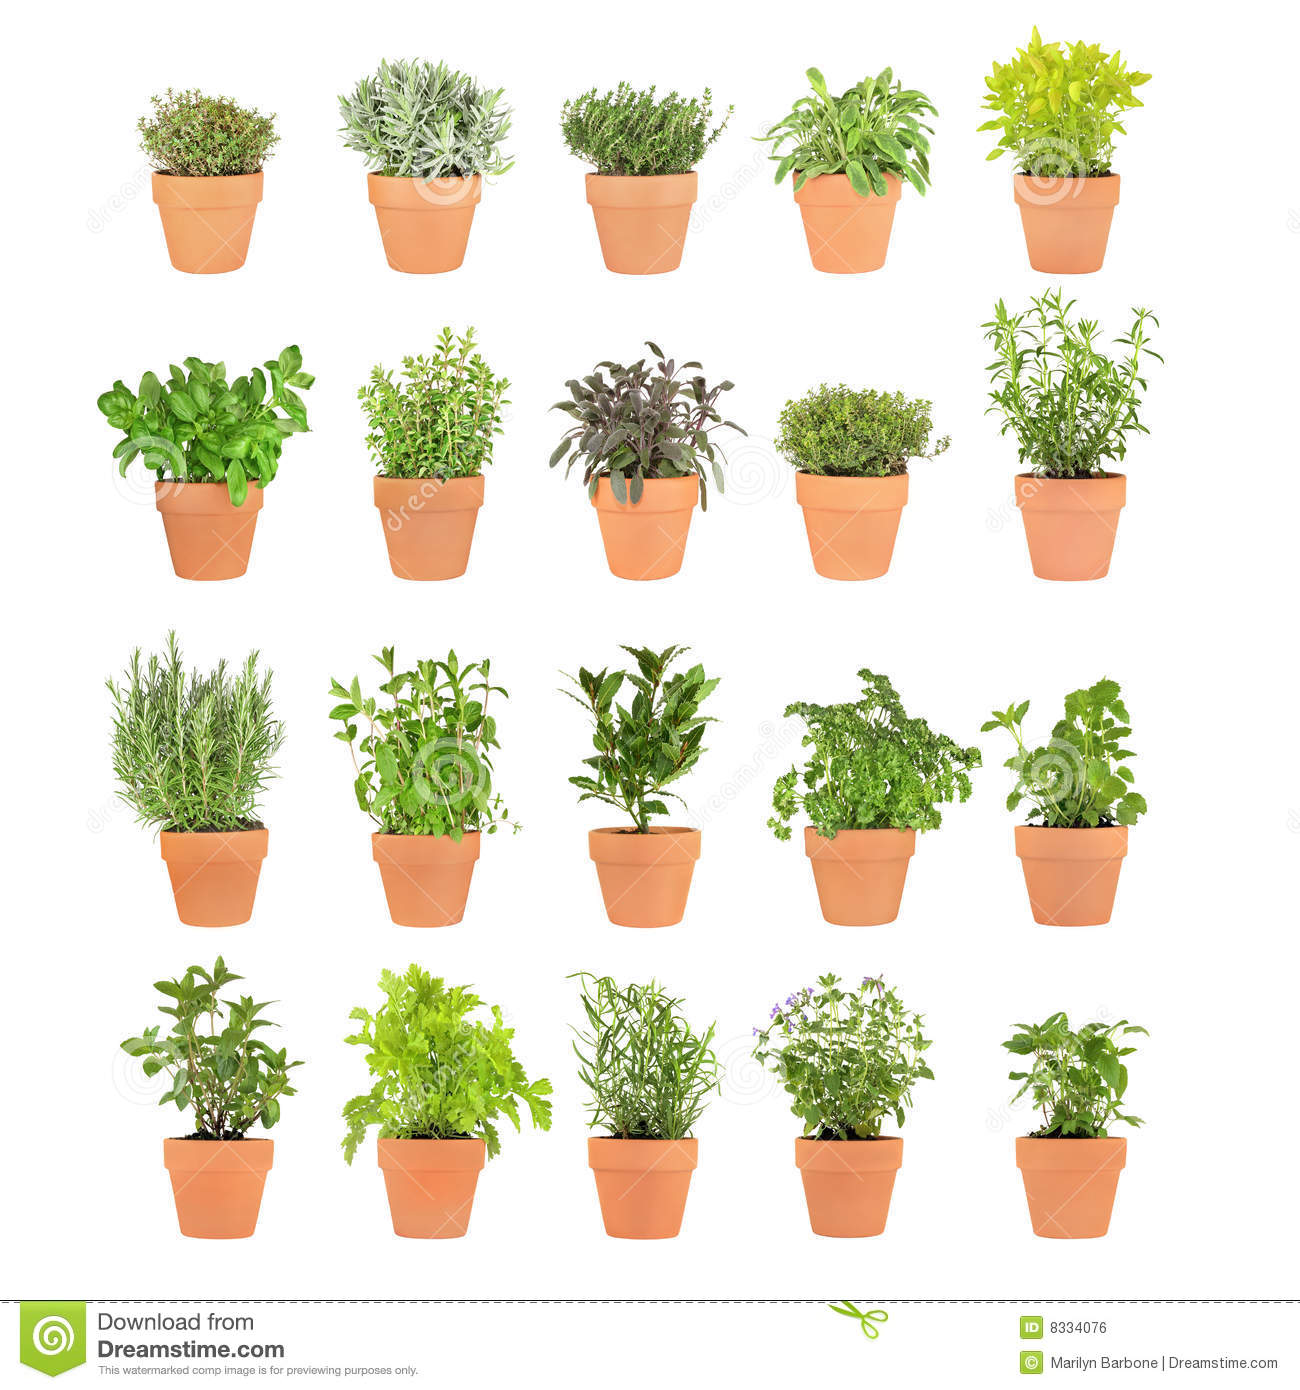 Different herbs royalty free stock image image 16265346 - Different Herbs Royalty Free Stock Image Image 16265346 Herbs In Pots Royalty Free Stock Image Download